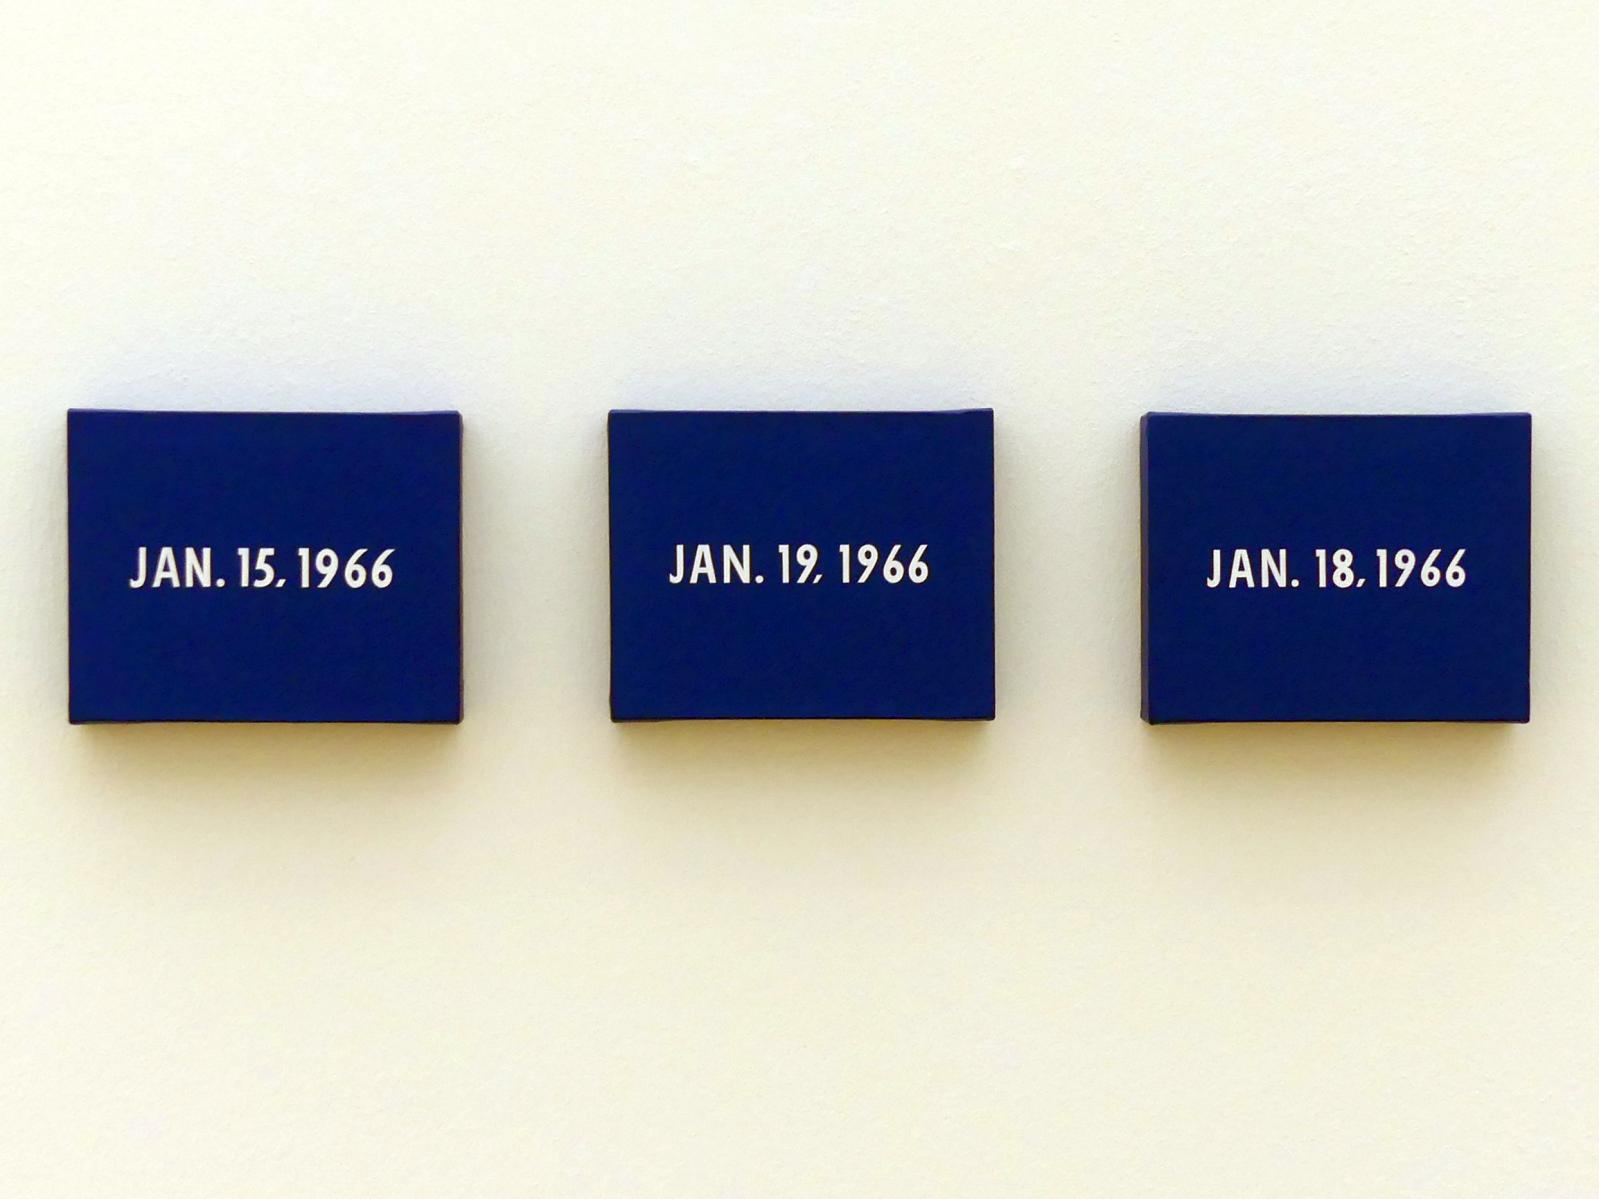 "On Kawara: Jan. 19, 1966 ""From 123 Chambers St. To 405 E. 13th St."" - 19. Januar 1966 ""Von Chambers St. 123 nach 405 E. 13th St."", 1966"